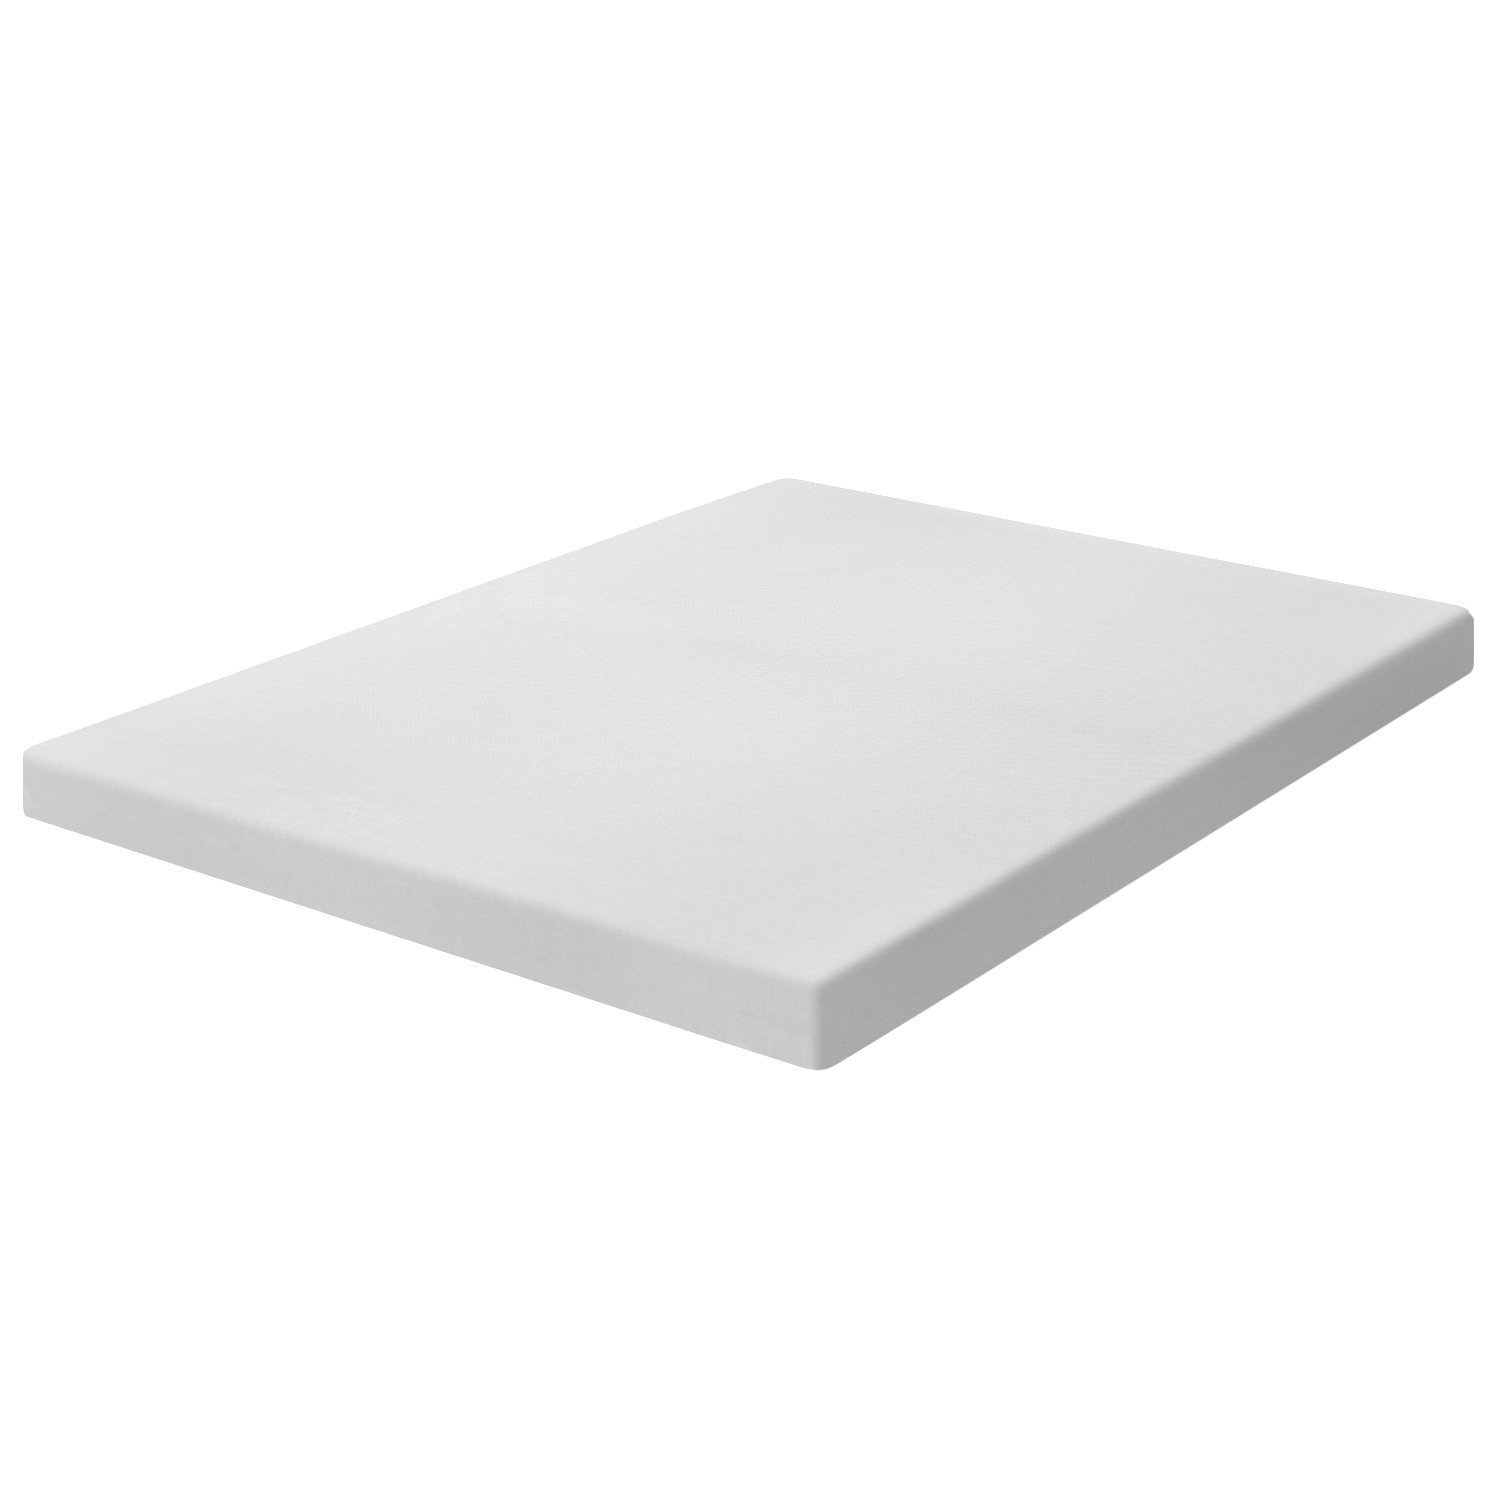 Amazon.com: Best Price Mattress 4-Inch Memory Foam Mattress Topper, Queen:  Kitchen & Dining